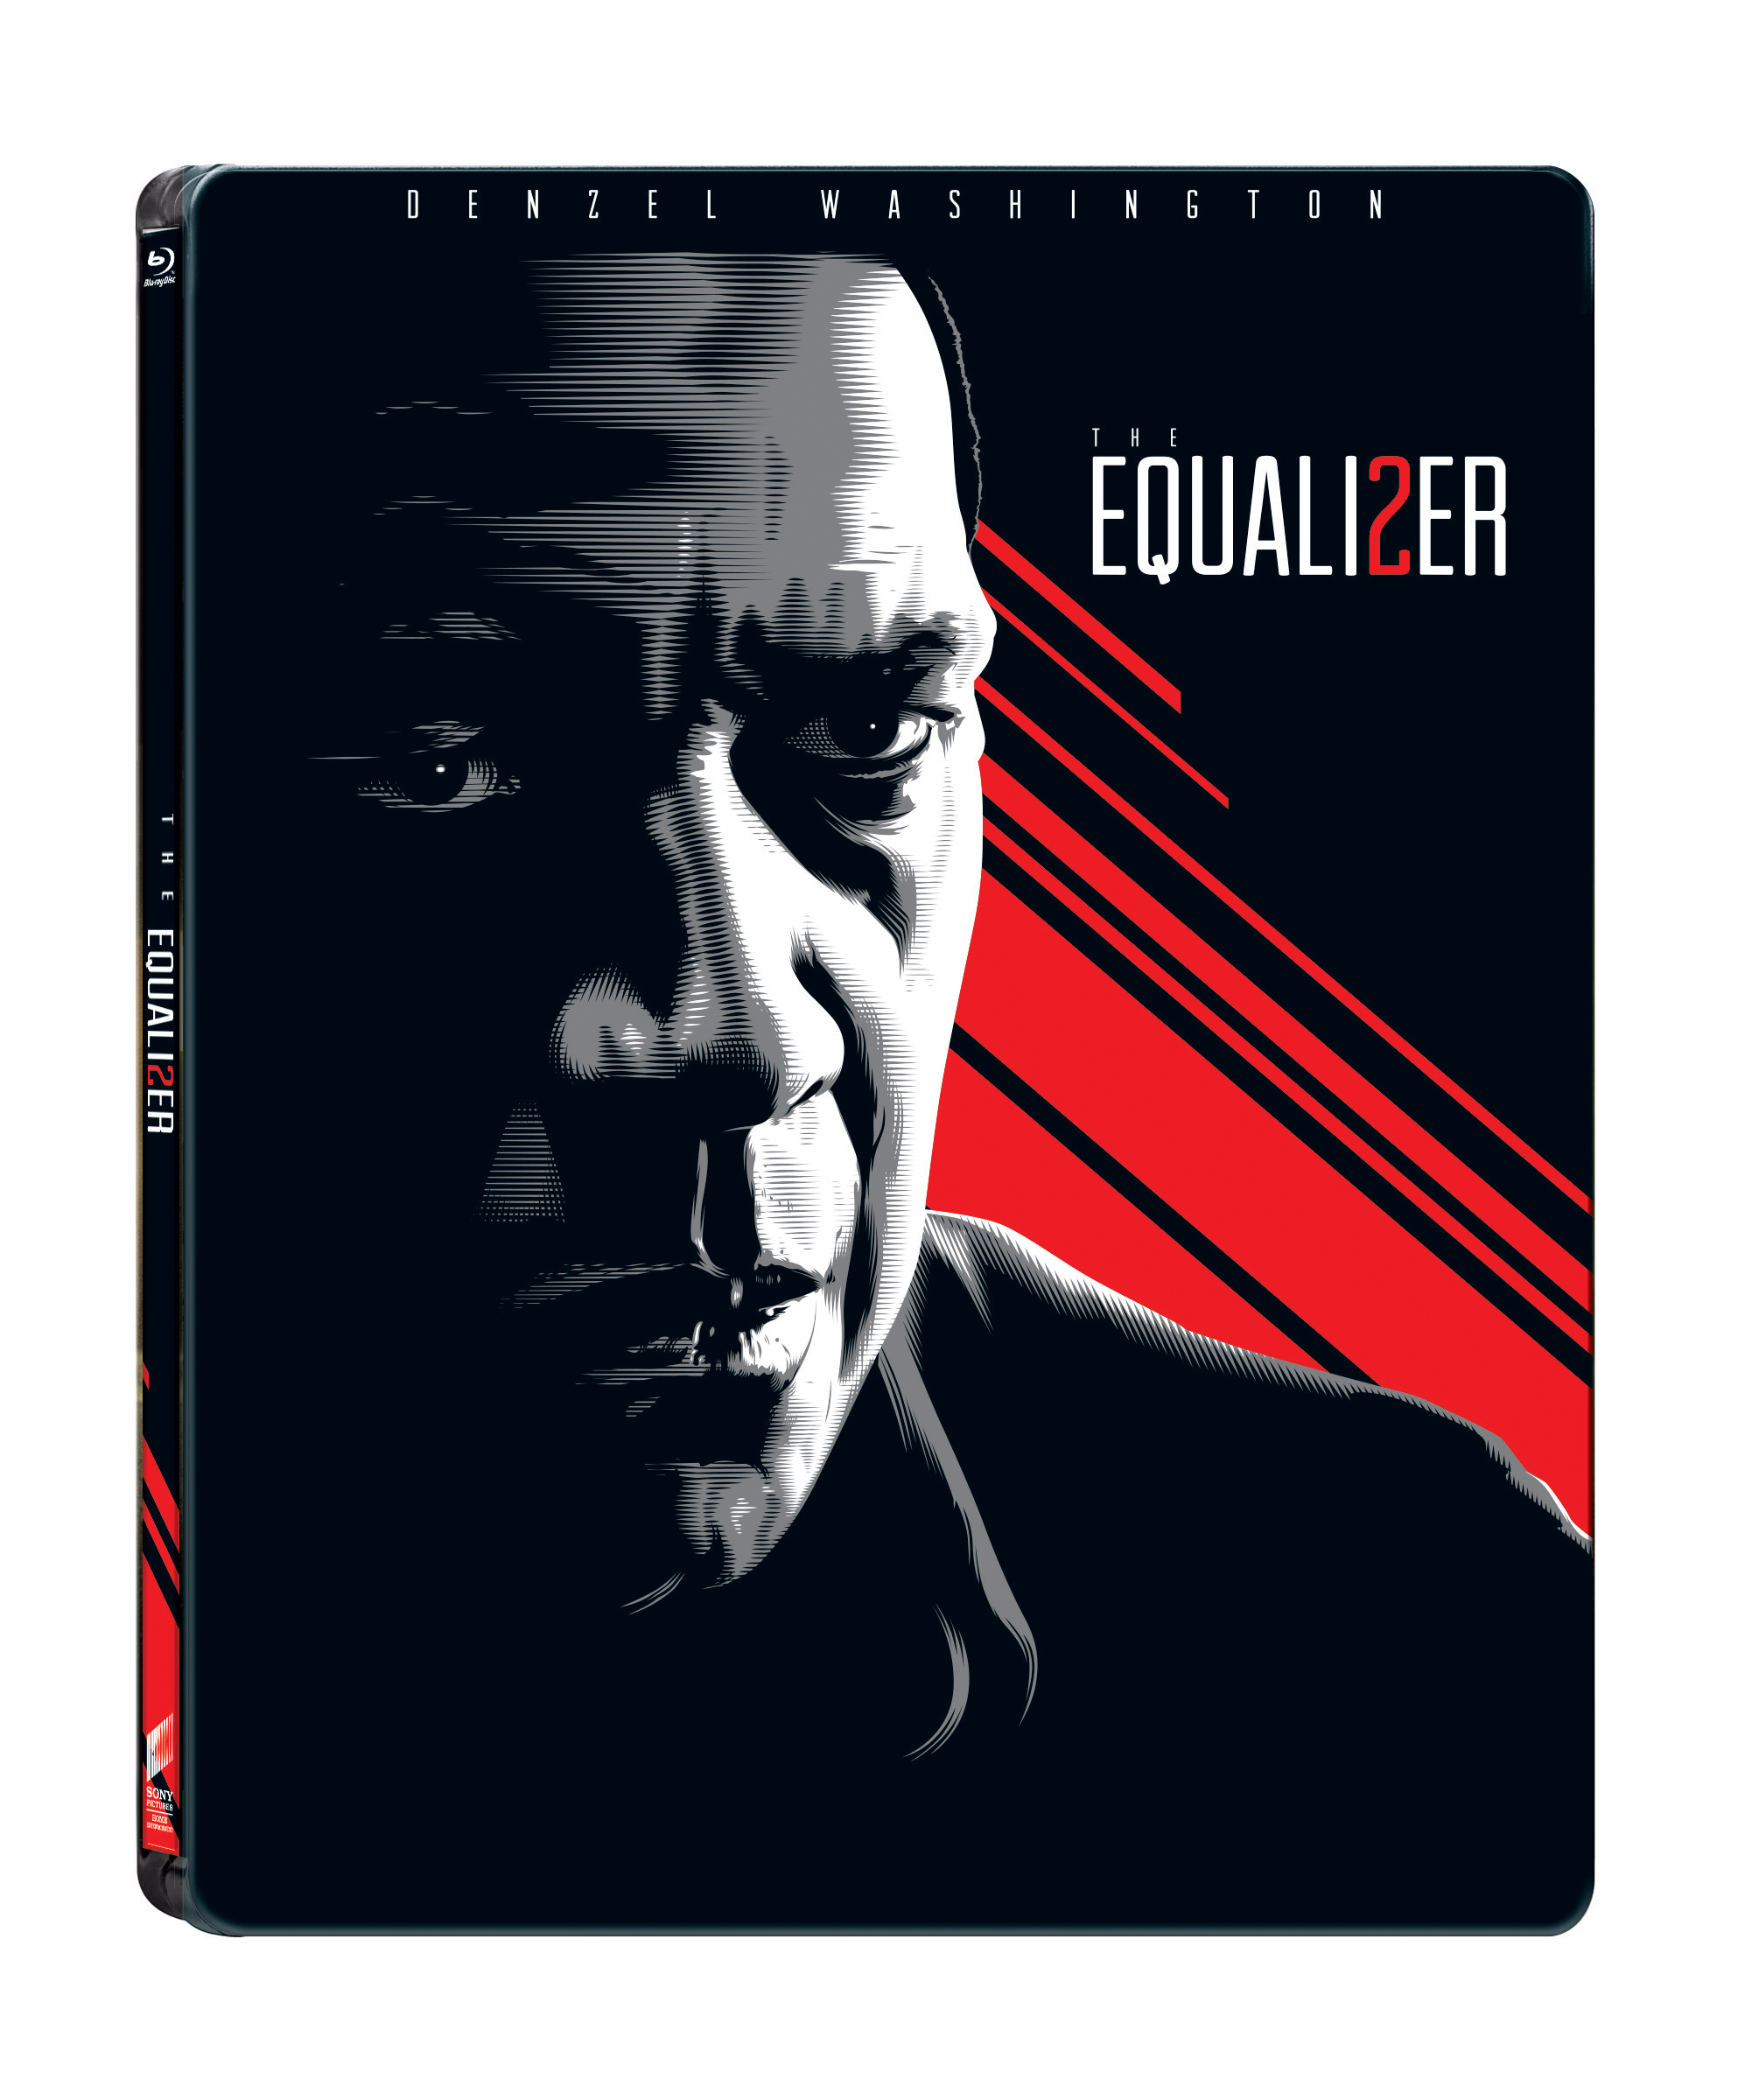 [Blu-ray] The Equalizer 2 (4K UHD+BD:2Disc) Steelbook Limited Edition